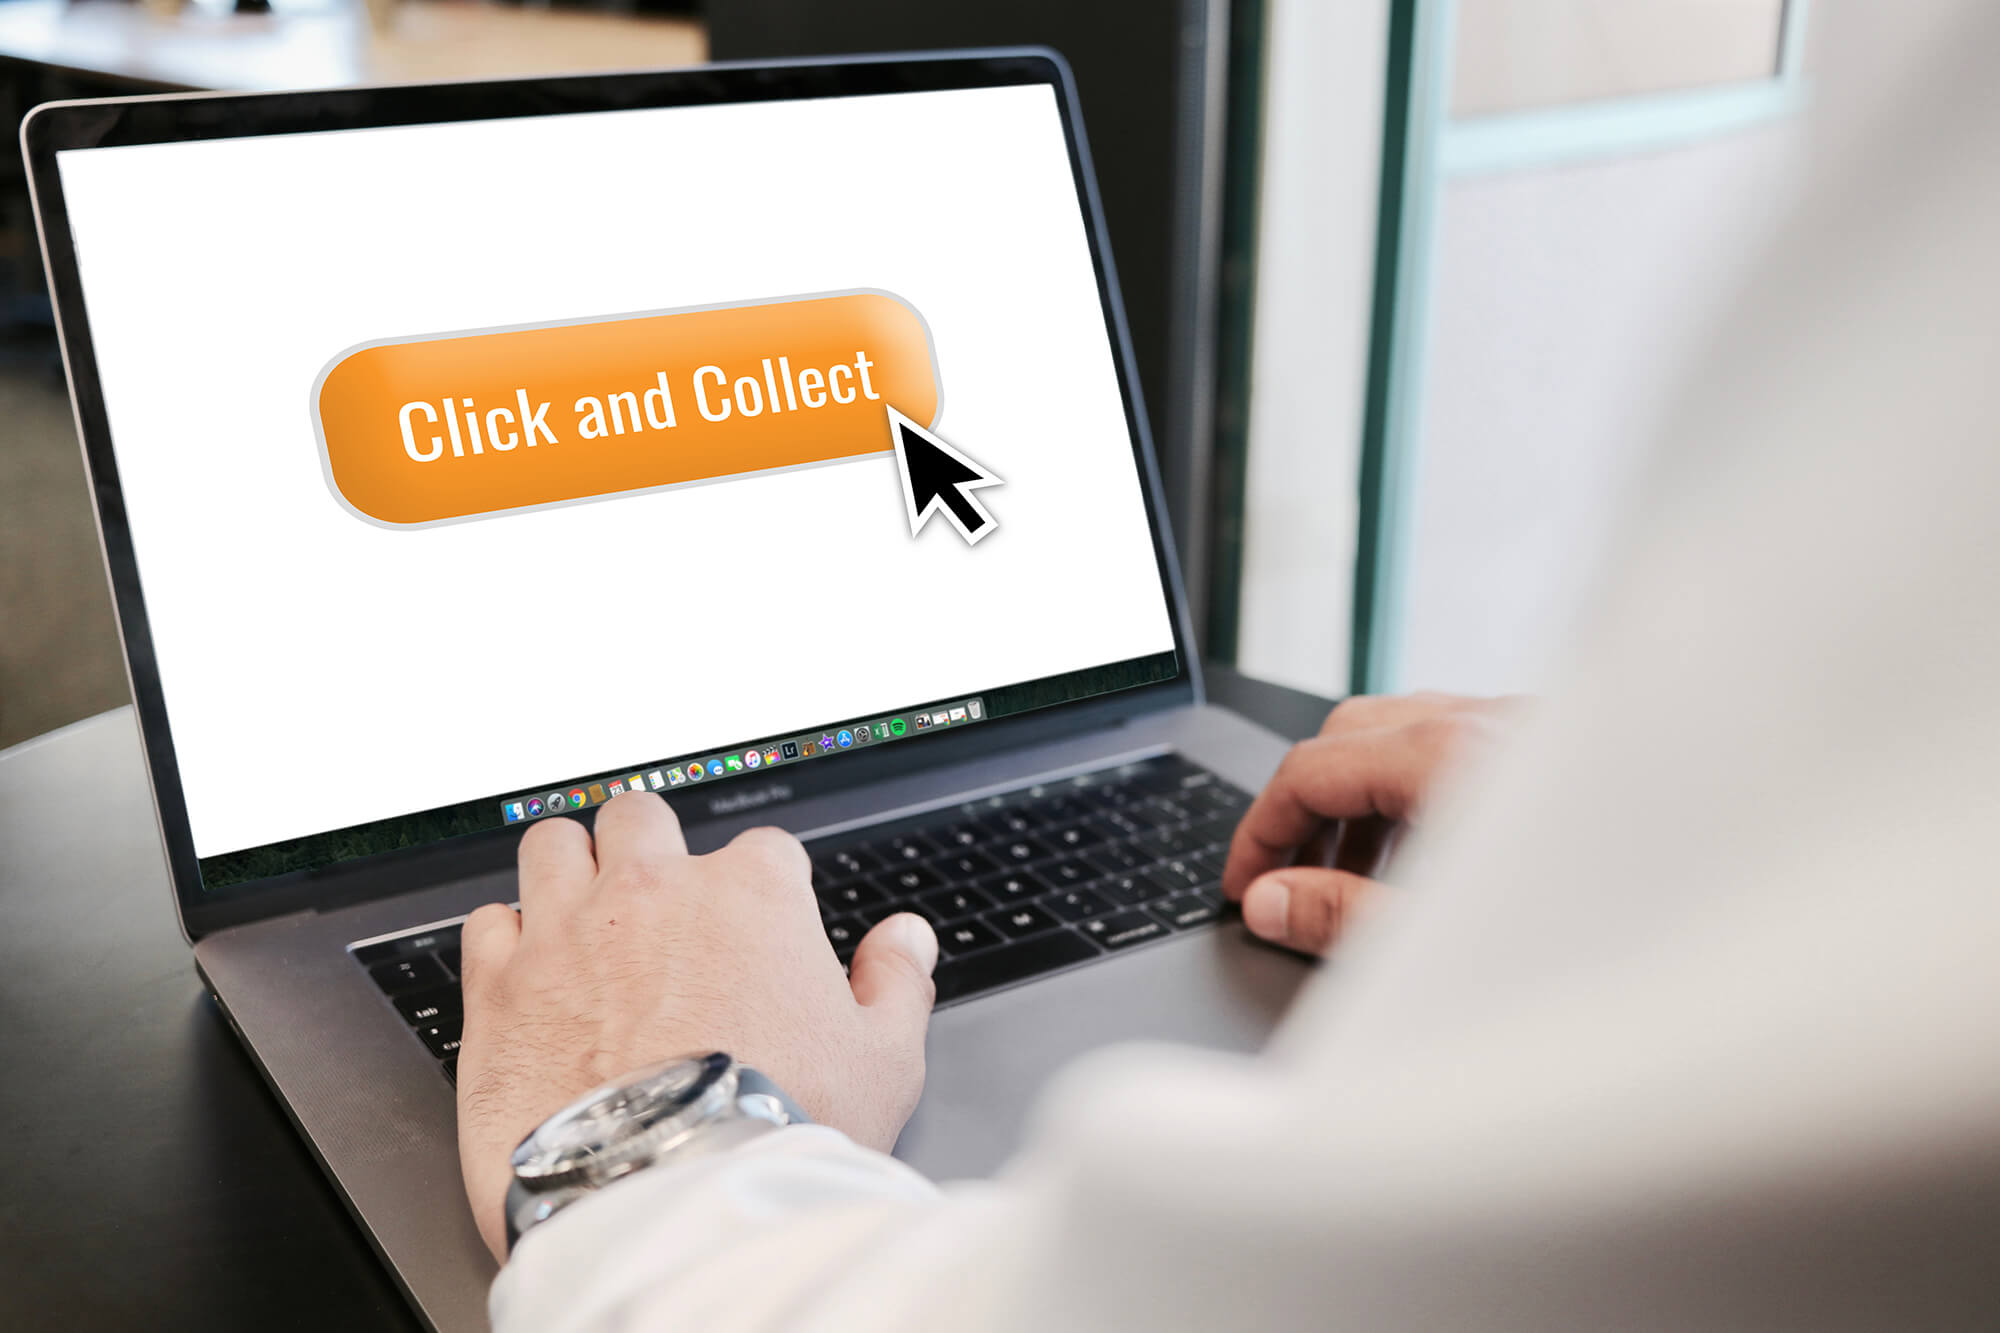 Online click and collect services